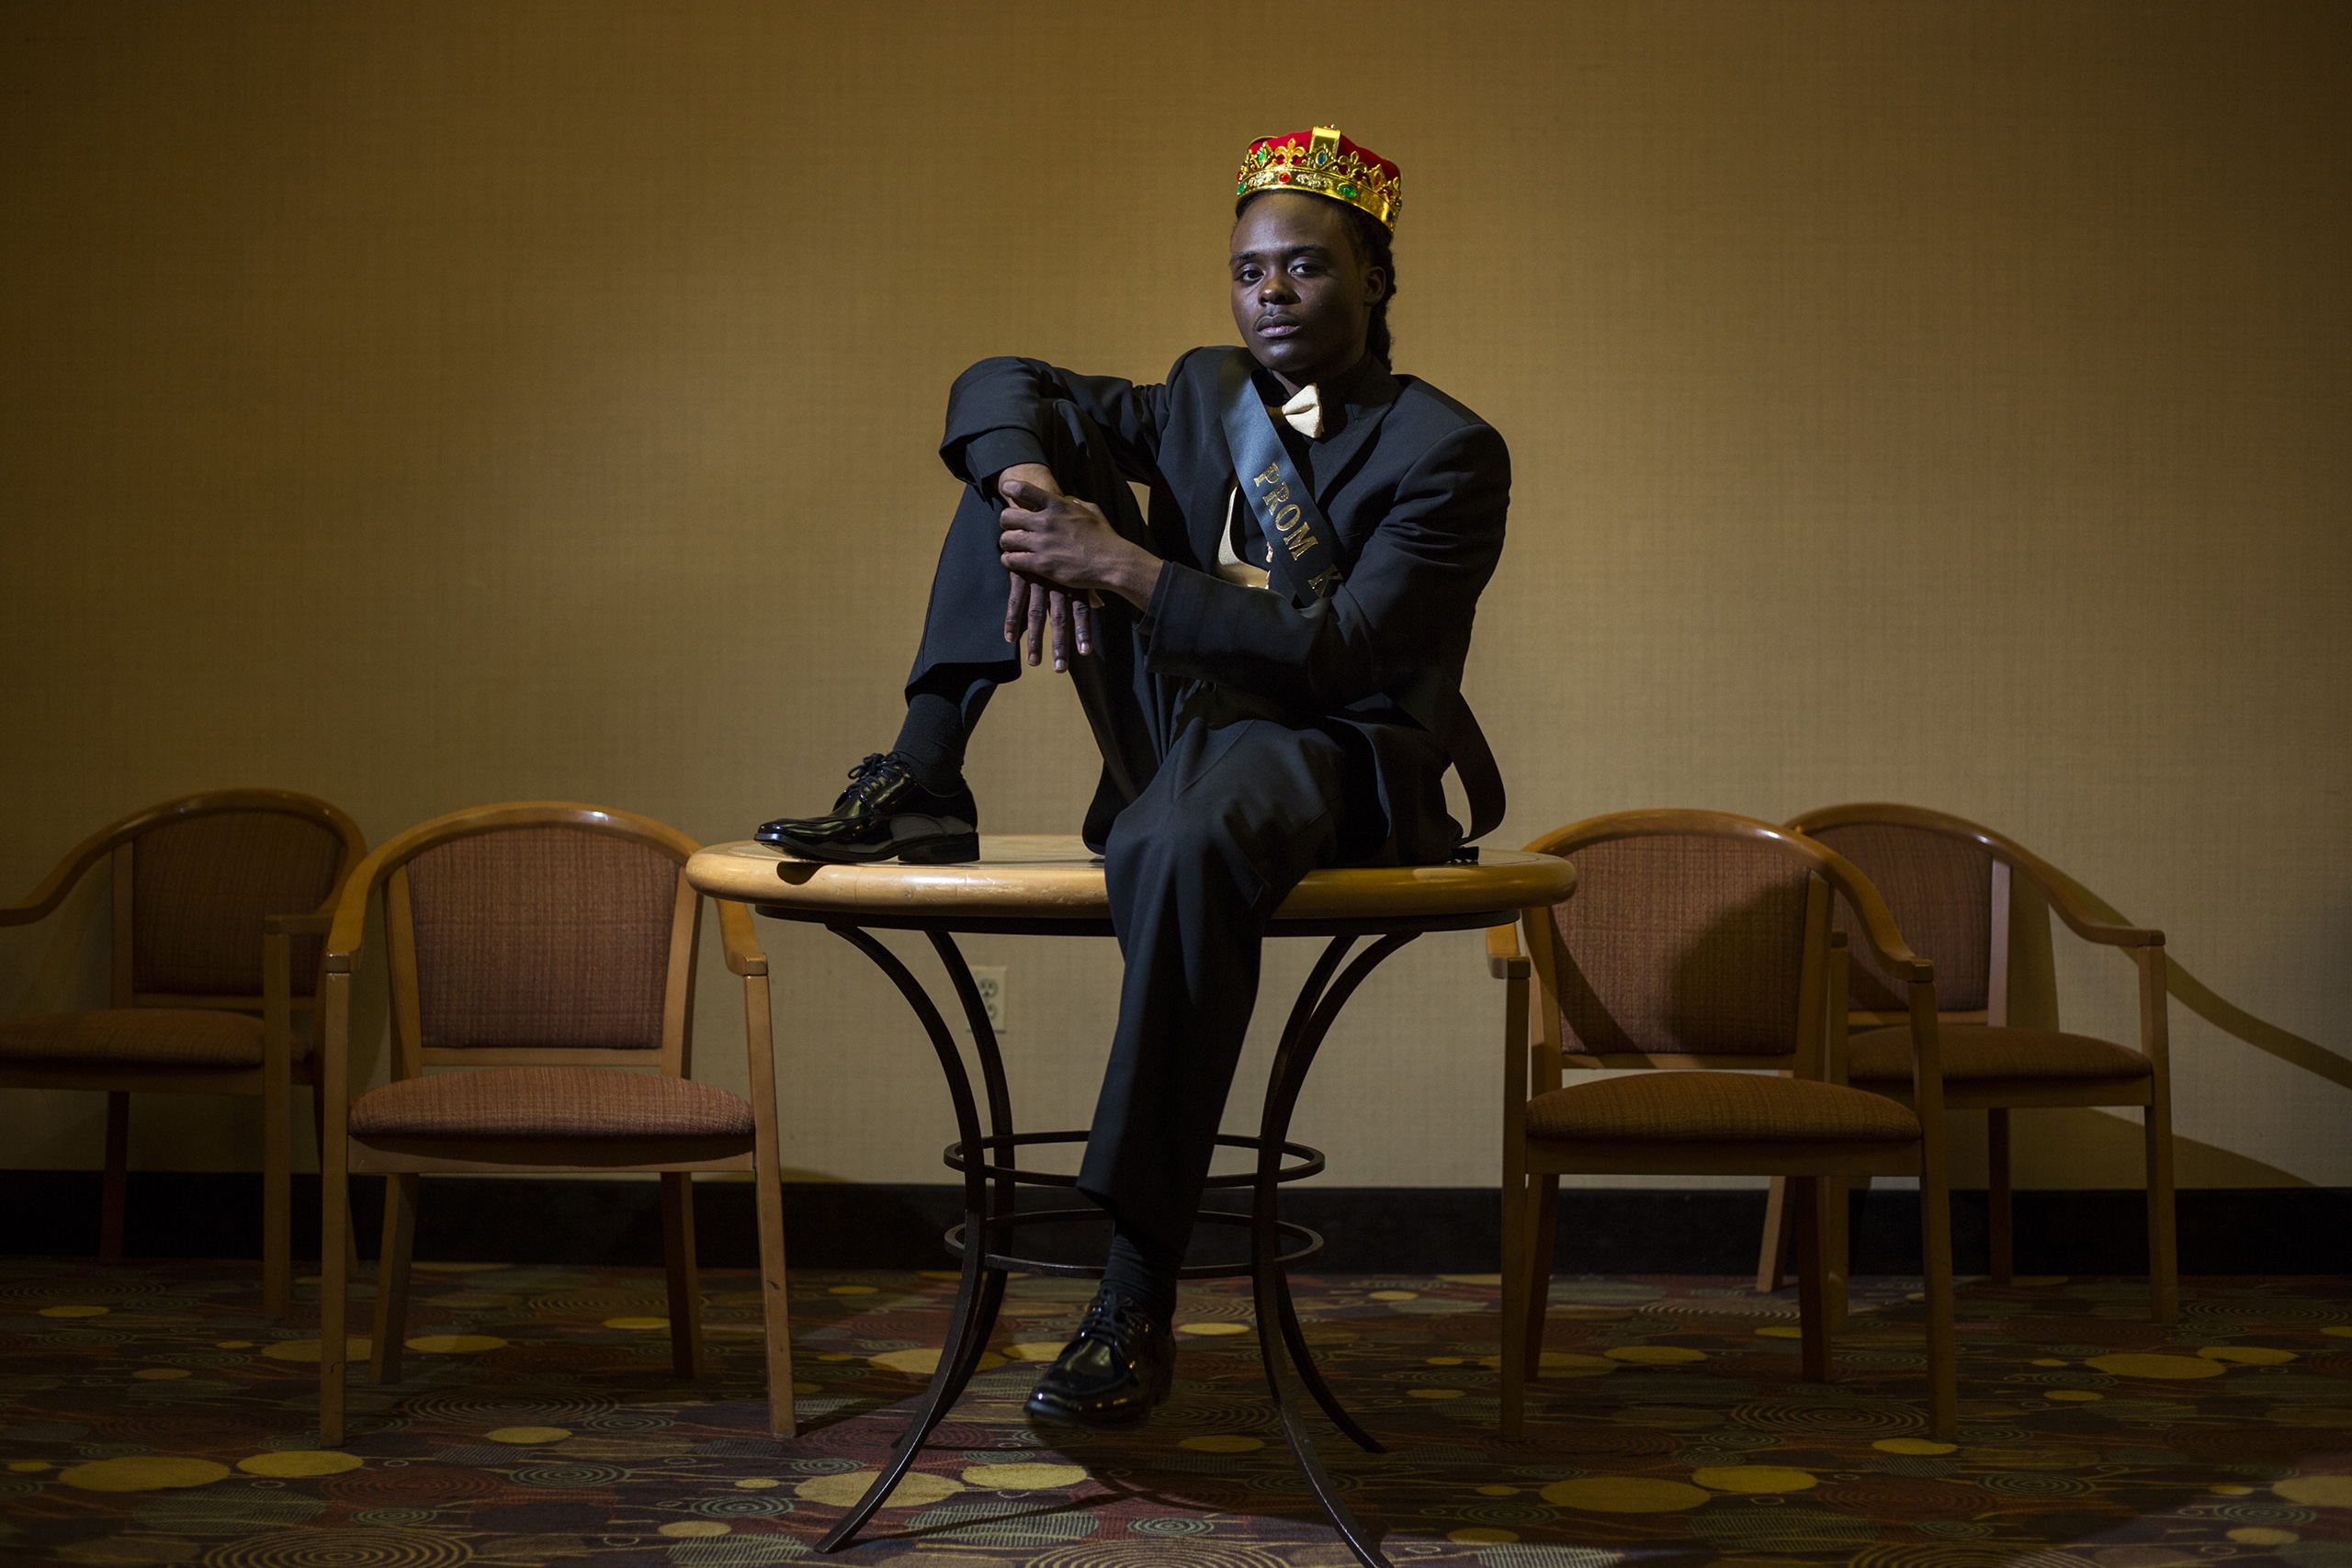 Prom king Mattek Scott, 18, of Flint, Mich., poses for a portrait at a Holiday Inn in Grand Blanc, May 21, 2016.  Not gonna lie, I tried to act surprised but I kind of knew,  Scott said, regarding his win.